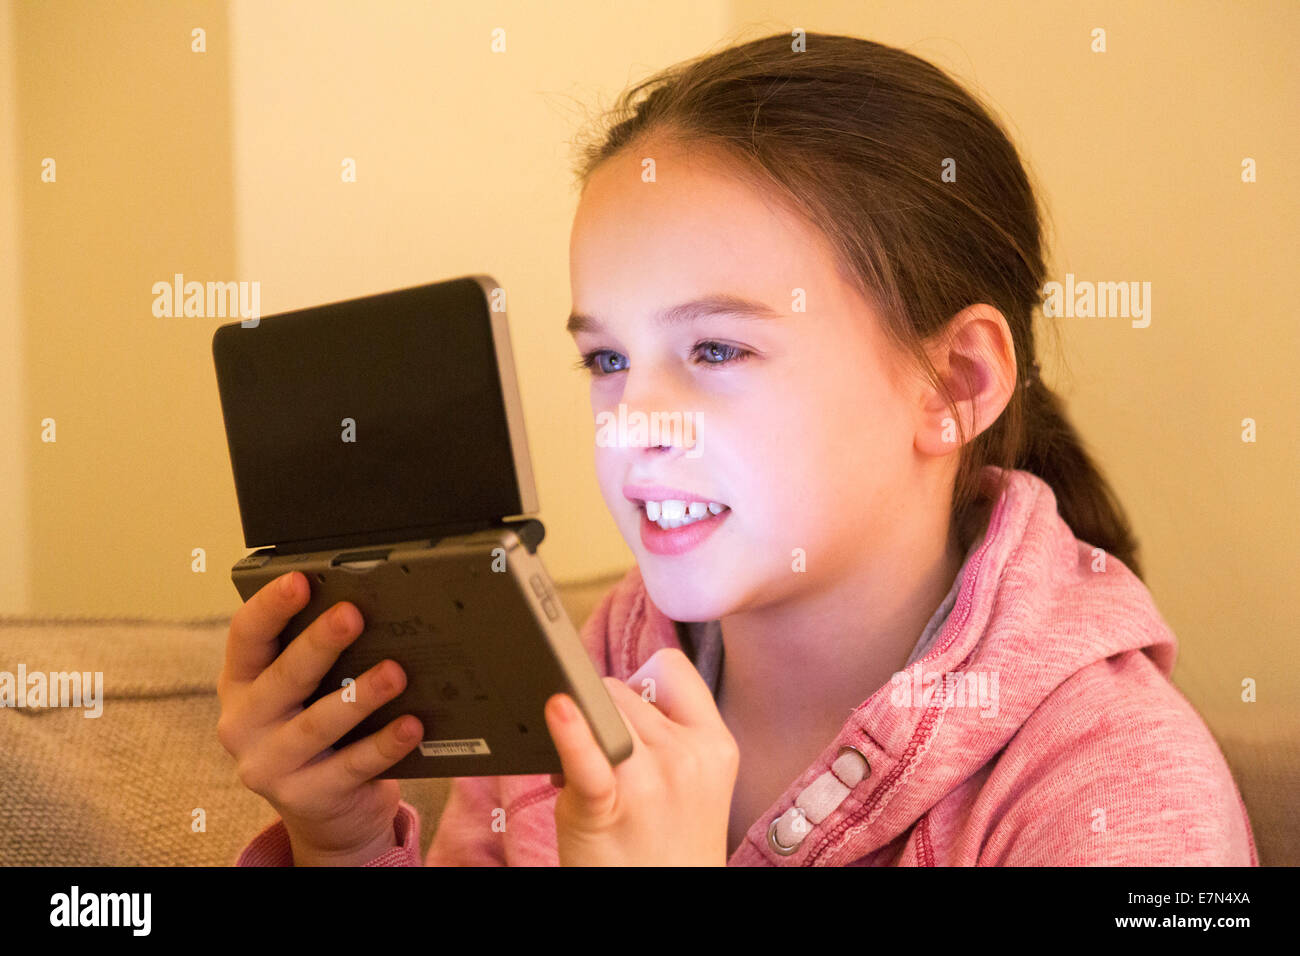 young girl using Nintendo DS games console - Stock Image